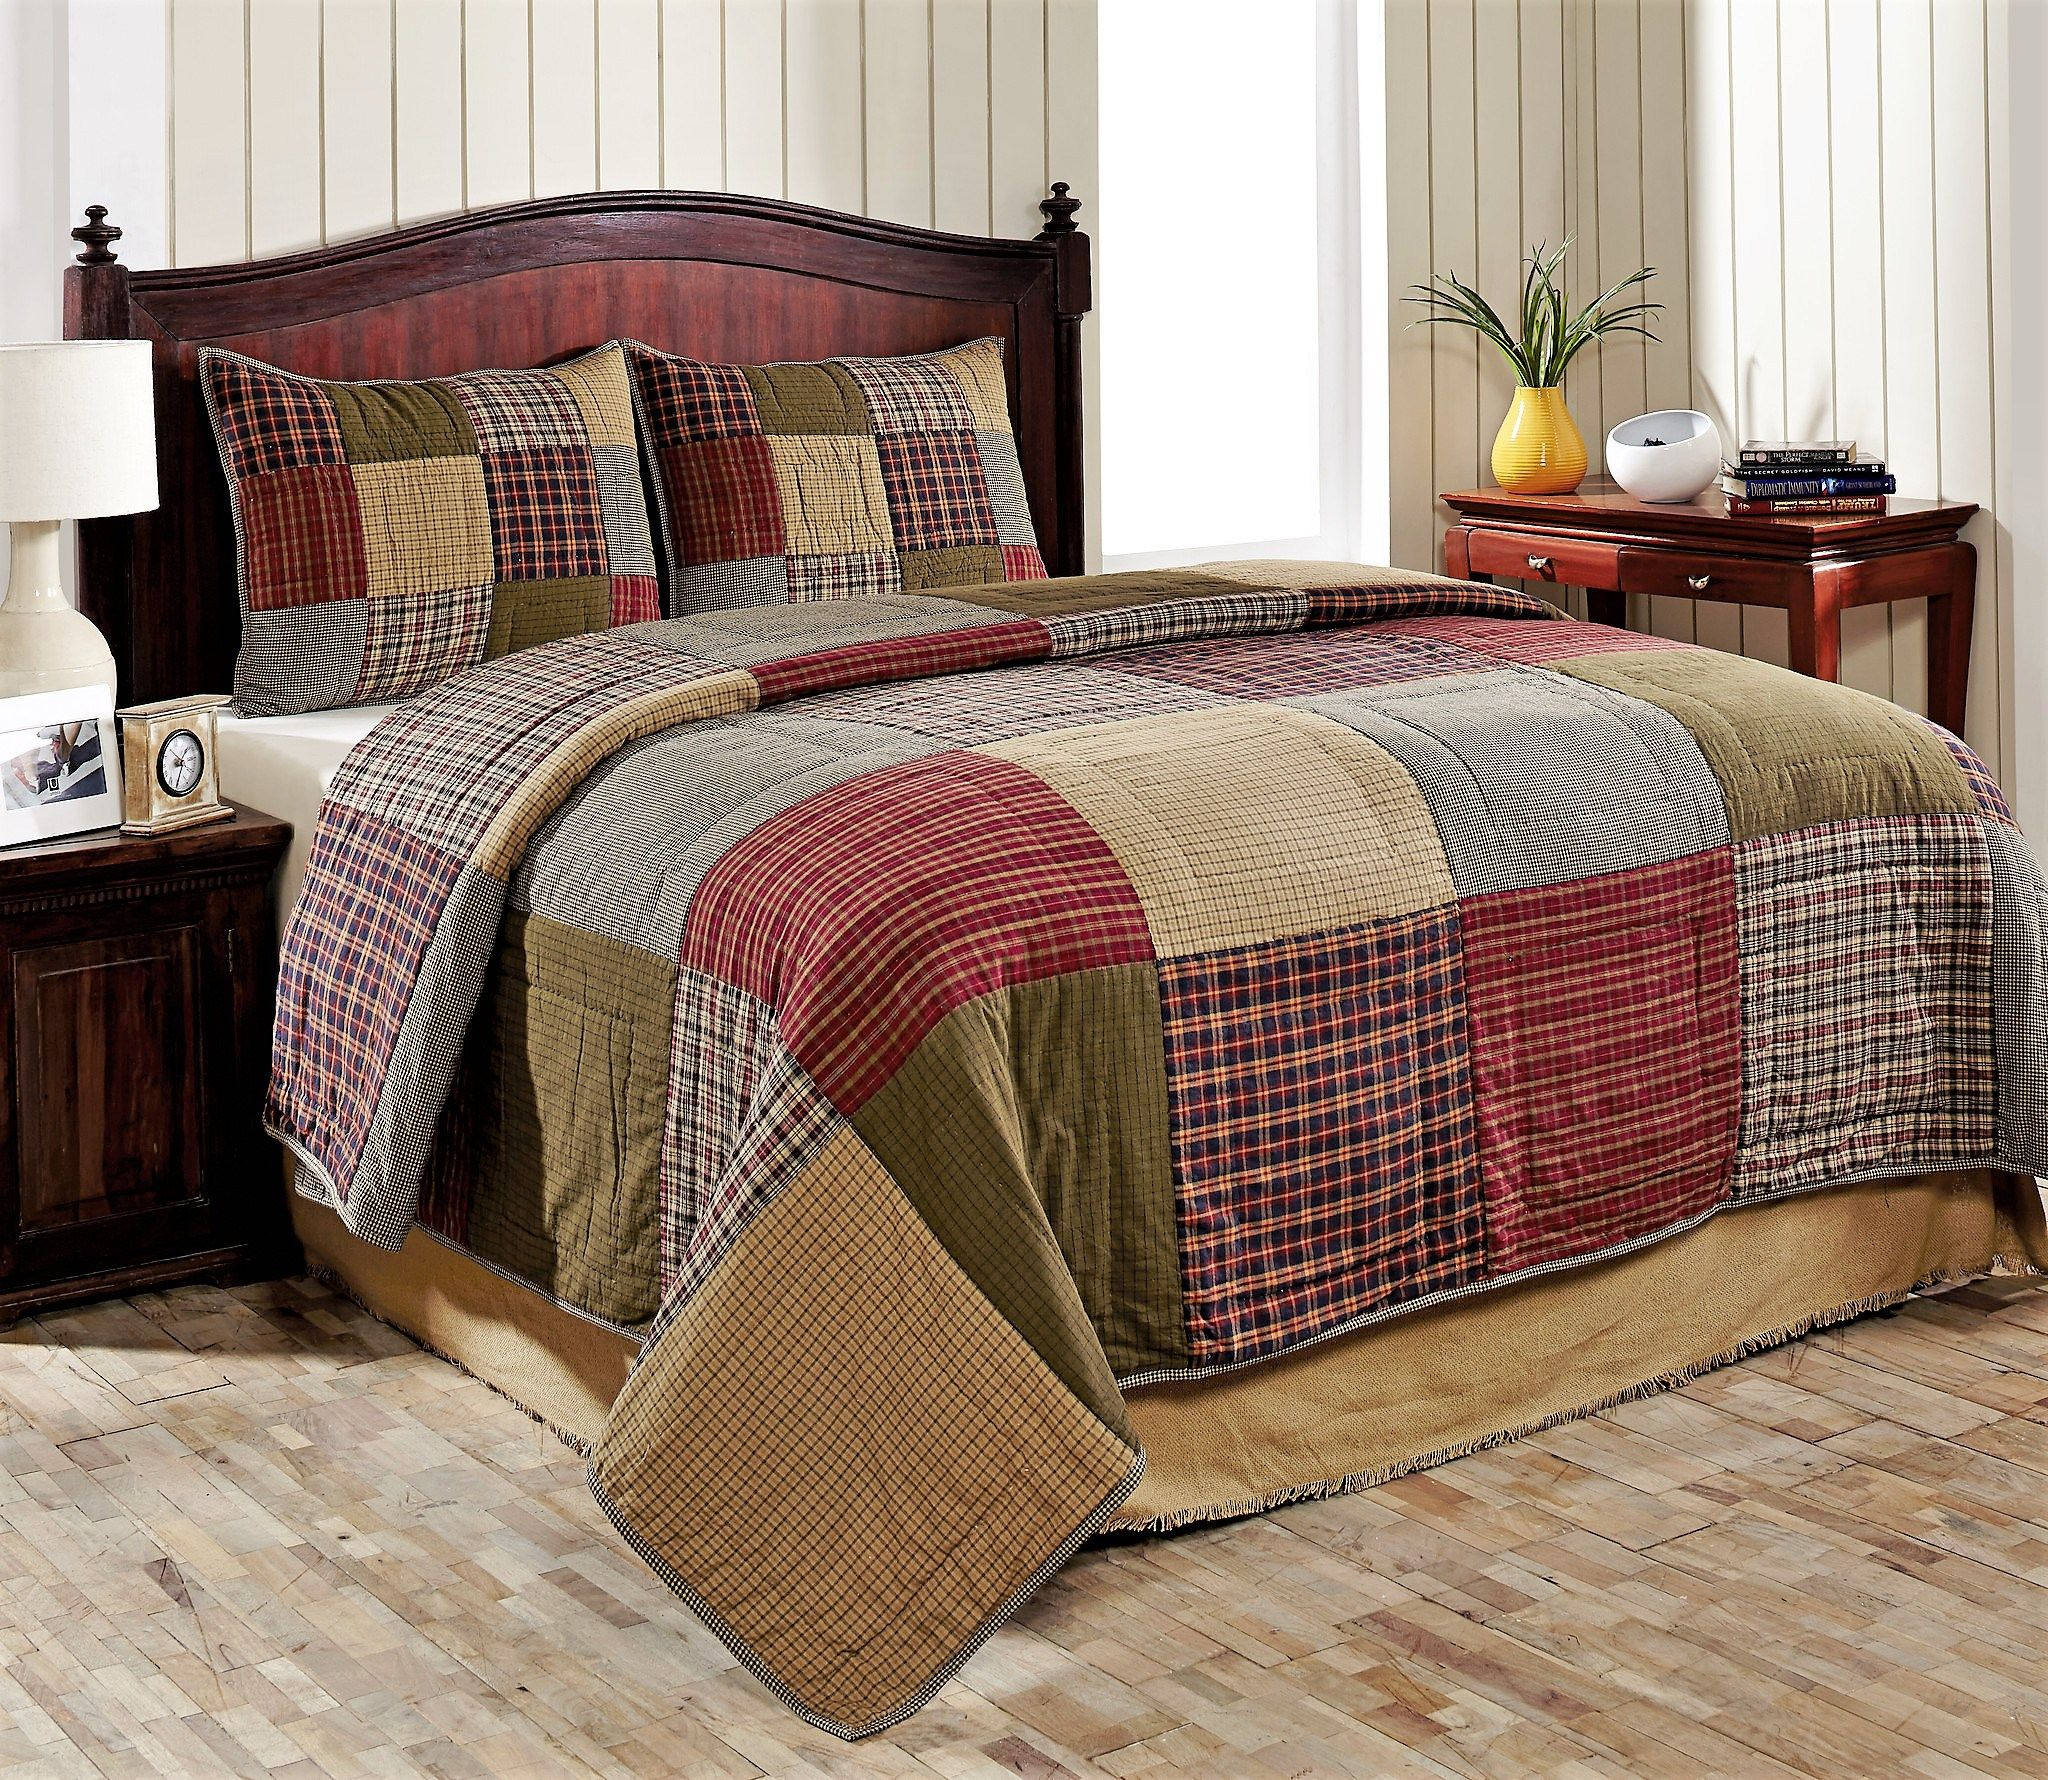 King Size Quilt Pillow Shams Quilted Bedding King Size Quilt Sets King Quilt Sets King Size Quilt